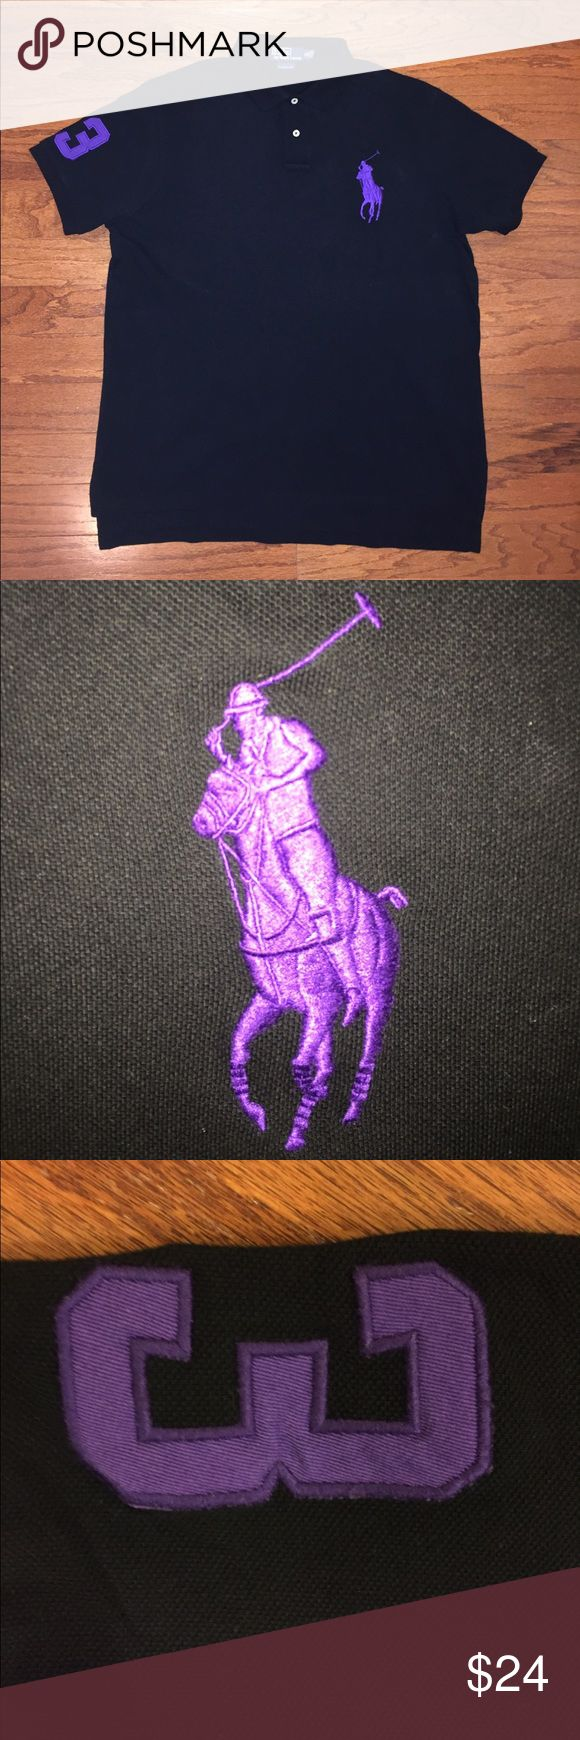 """Polo By Ralph Lauren, Pique Big Logo Short Sleeve Very good condition, gently worn, black color with big purple Polo horse logo, purple number 3 patch on right sleeve, 100% cotton pique material, men's size x-large, custom fit, measures about 25"""" pit to pit and 31"""" from top to bottom of shirt tail, extremely nice looking Polo! Polo by Ralph Lauren Shirts Polos"""